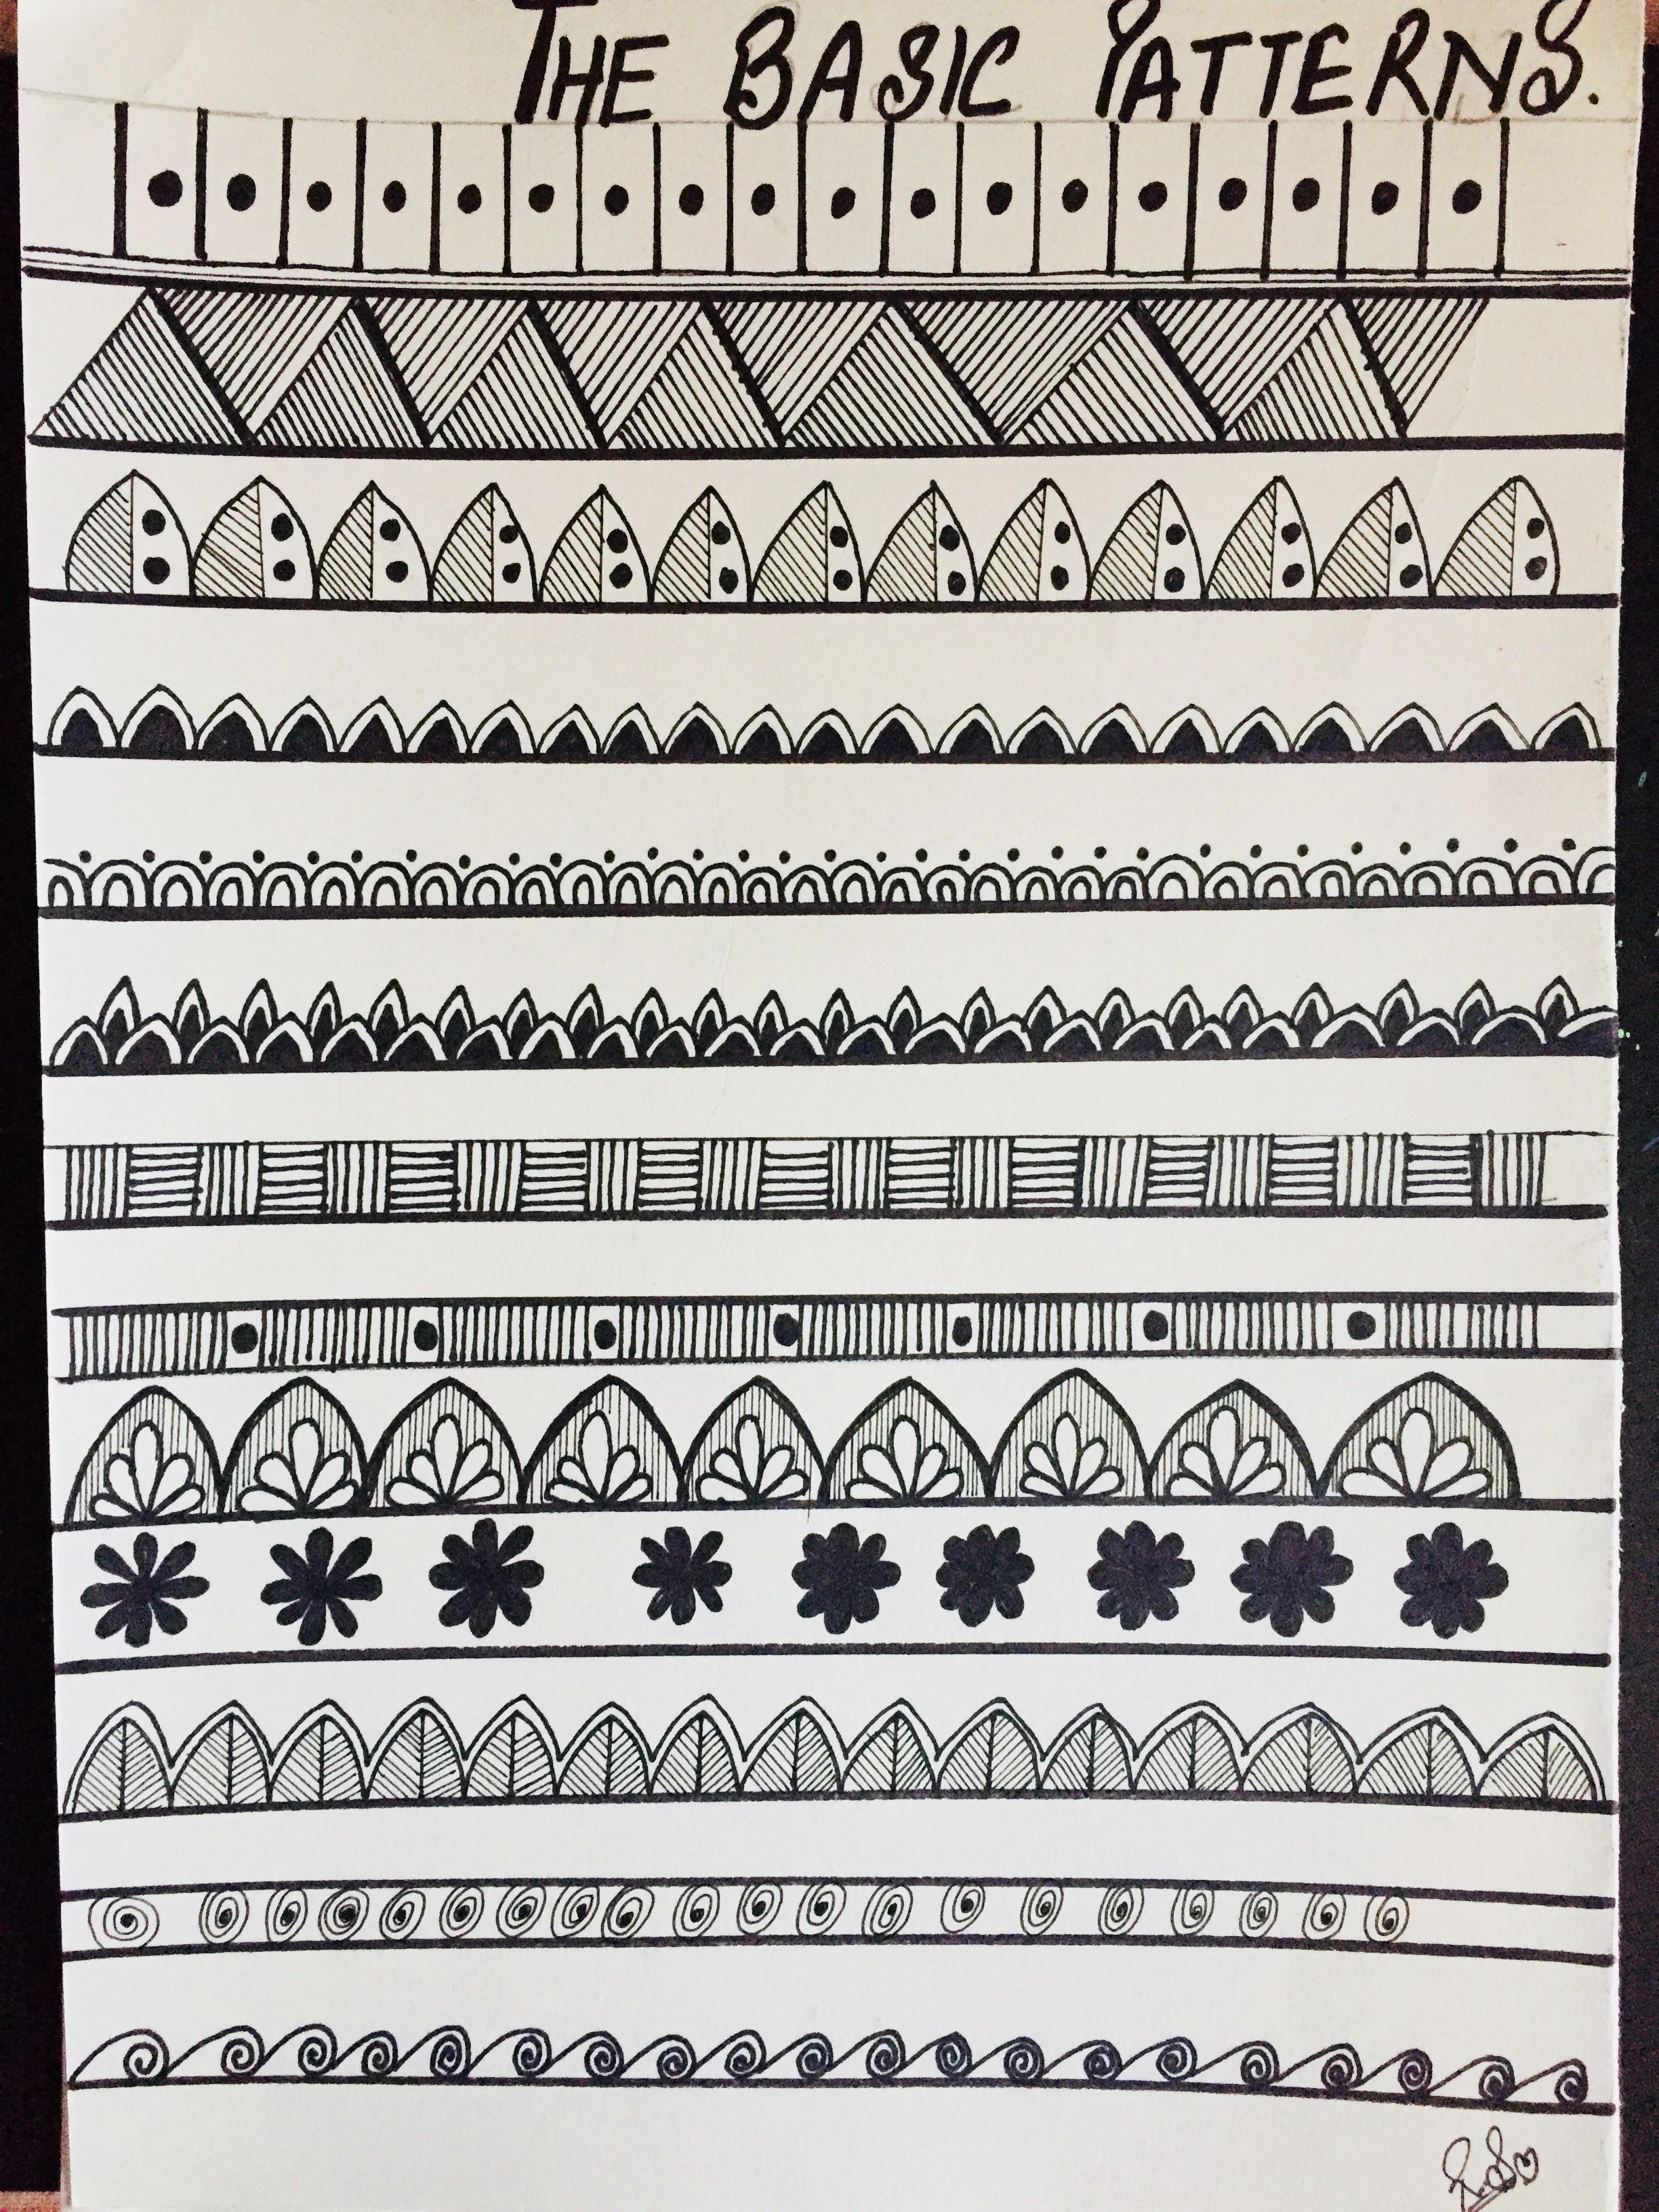 Zentangle patrones | zentangle | Pinterest | Zentangle, Patrones y ...